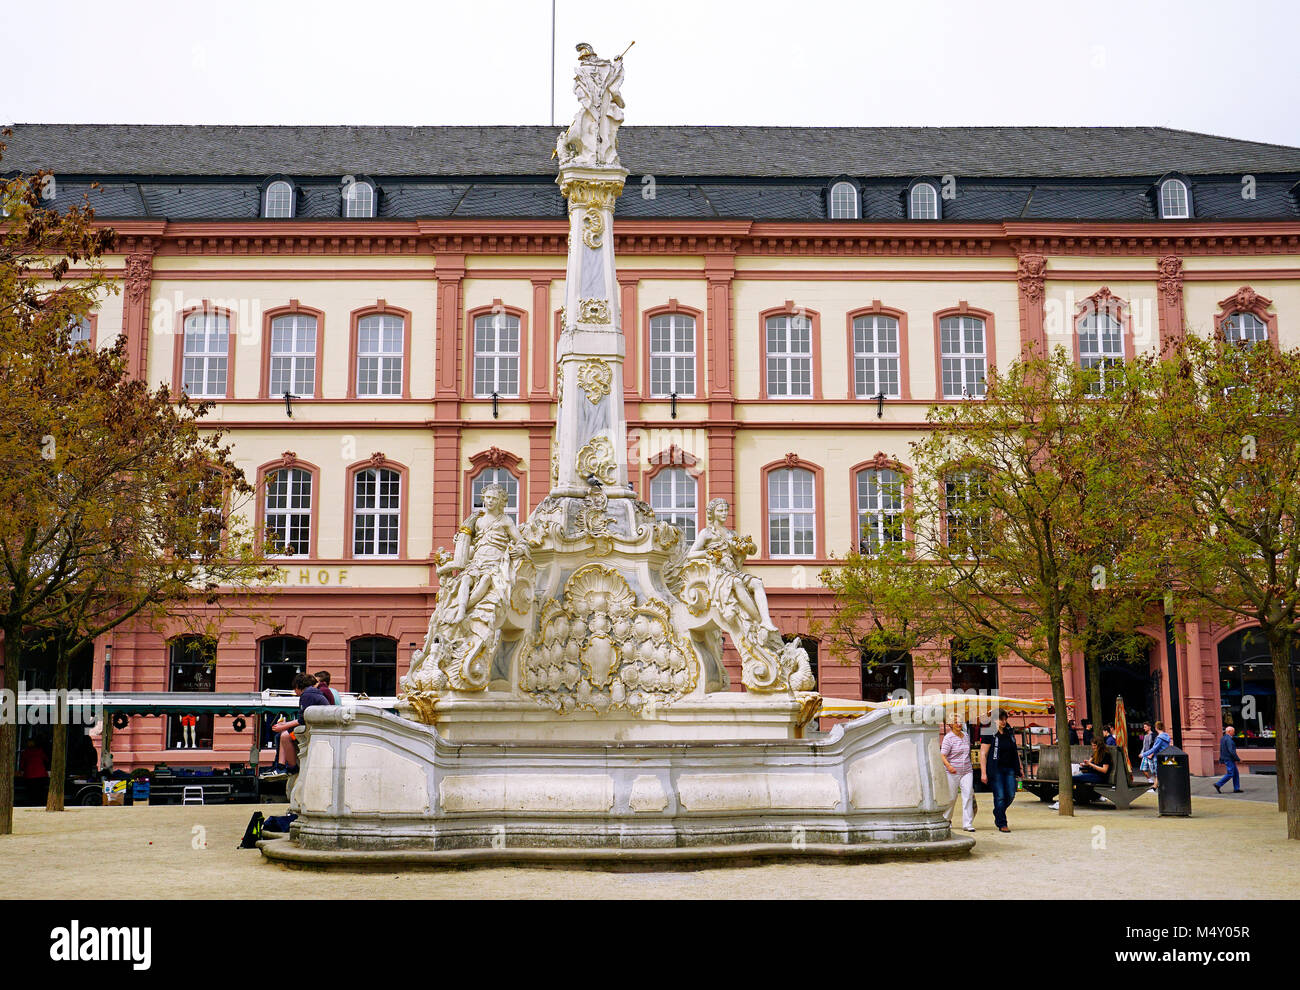 Sankt Georg fountain, one of the most beautiful rococo fountains of Germany, Corn market, Trier, Rhineland-Palatinate, Stock Photo